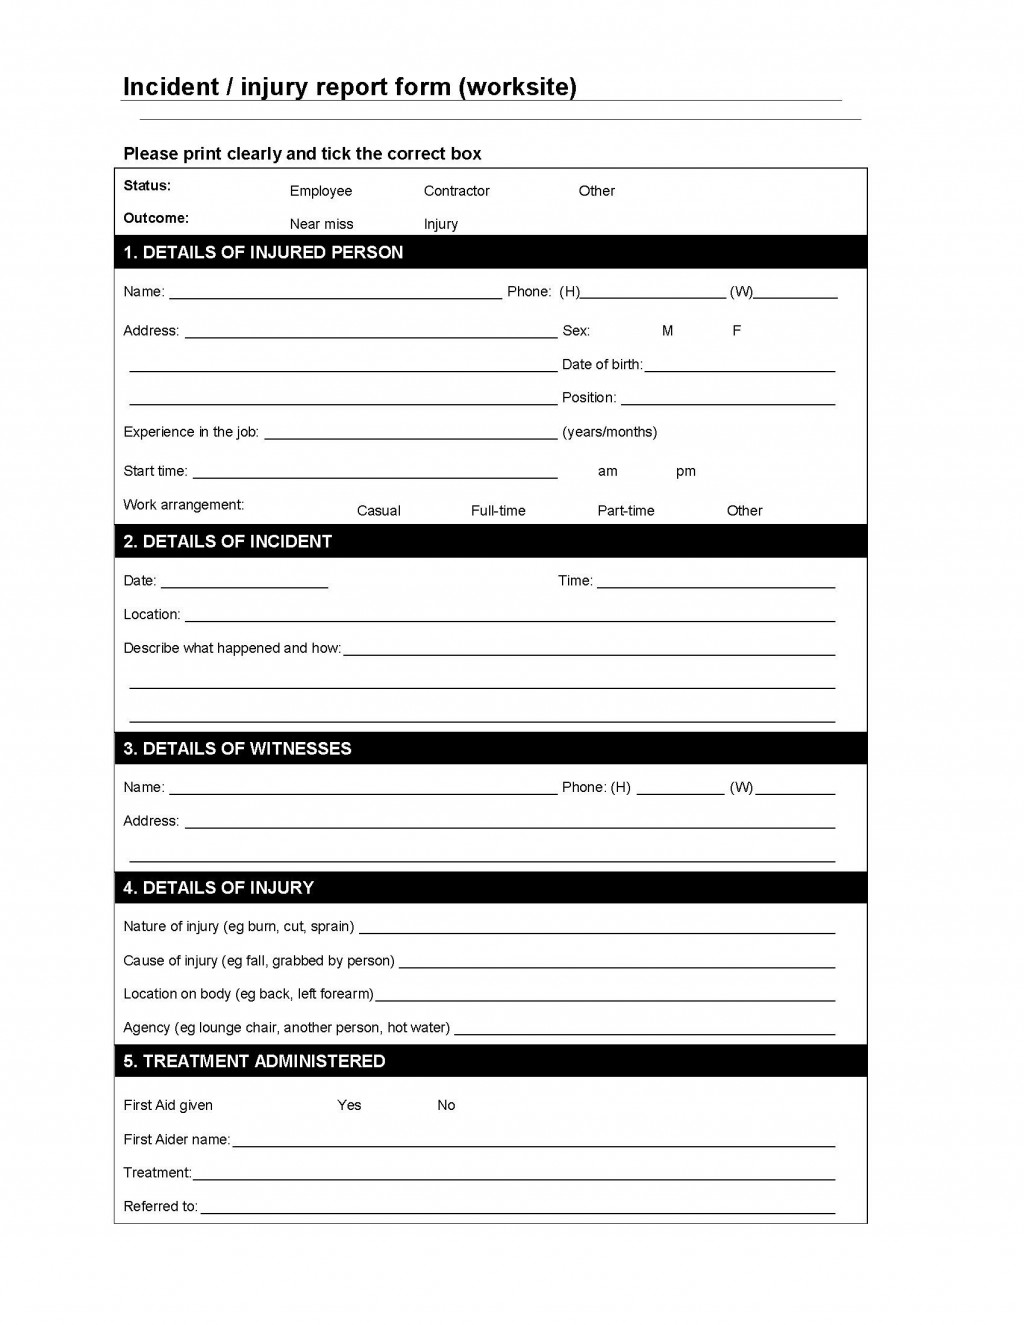 003 Imposing Workplace Incident Report Form Ontario Sample  ViolenceLarge